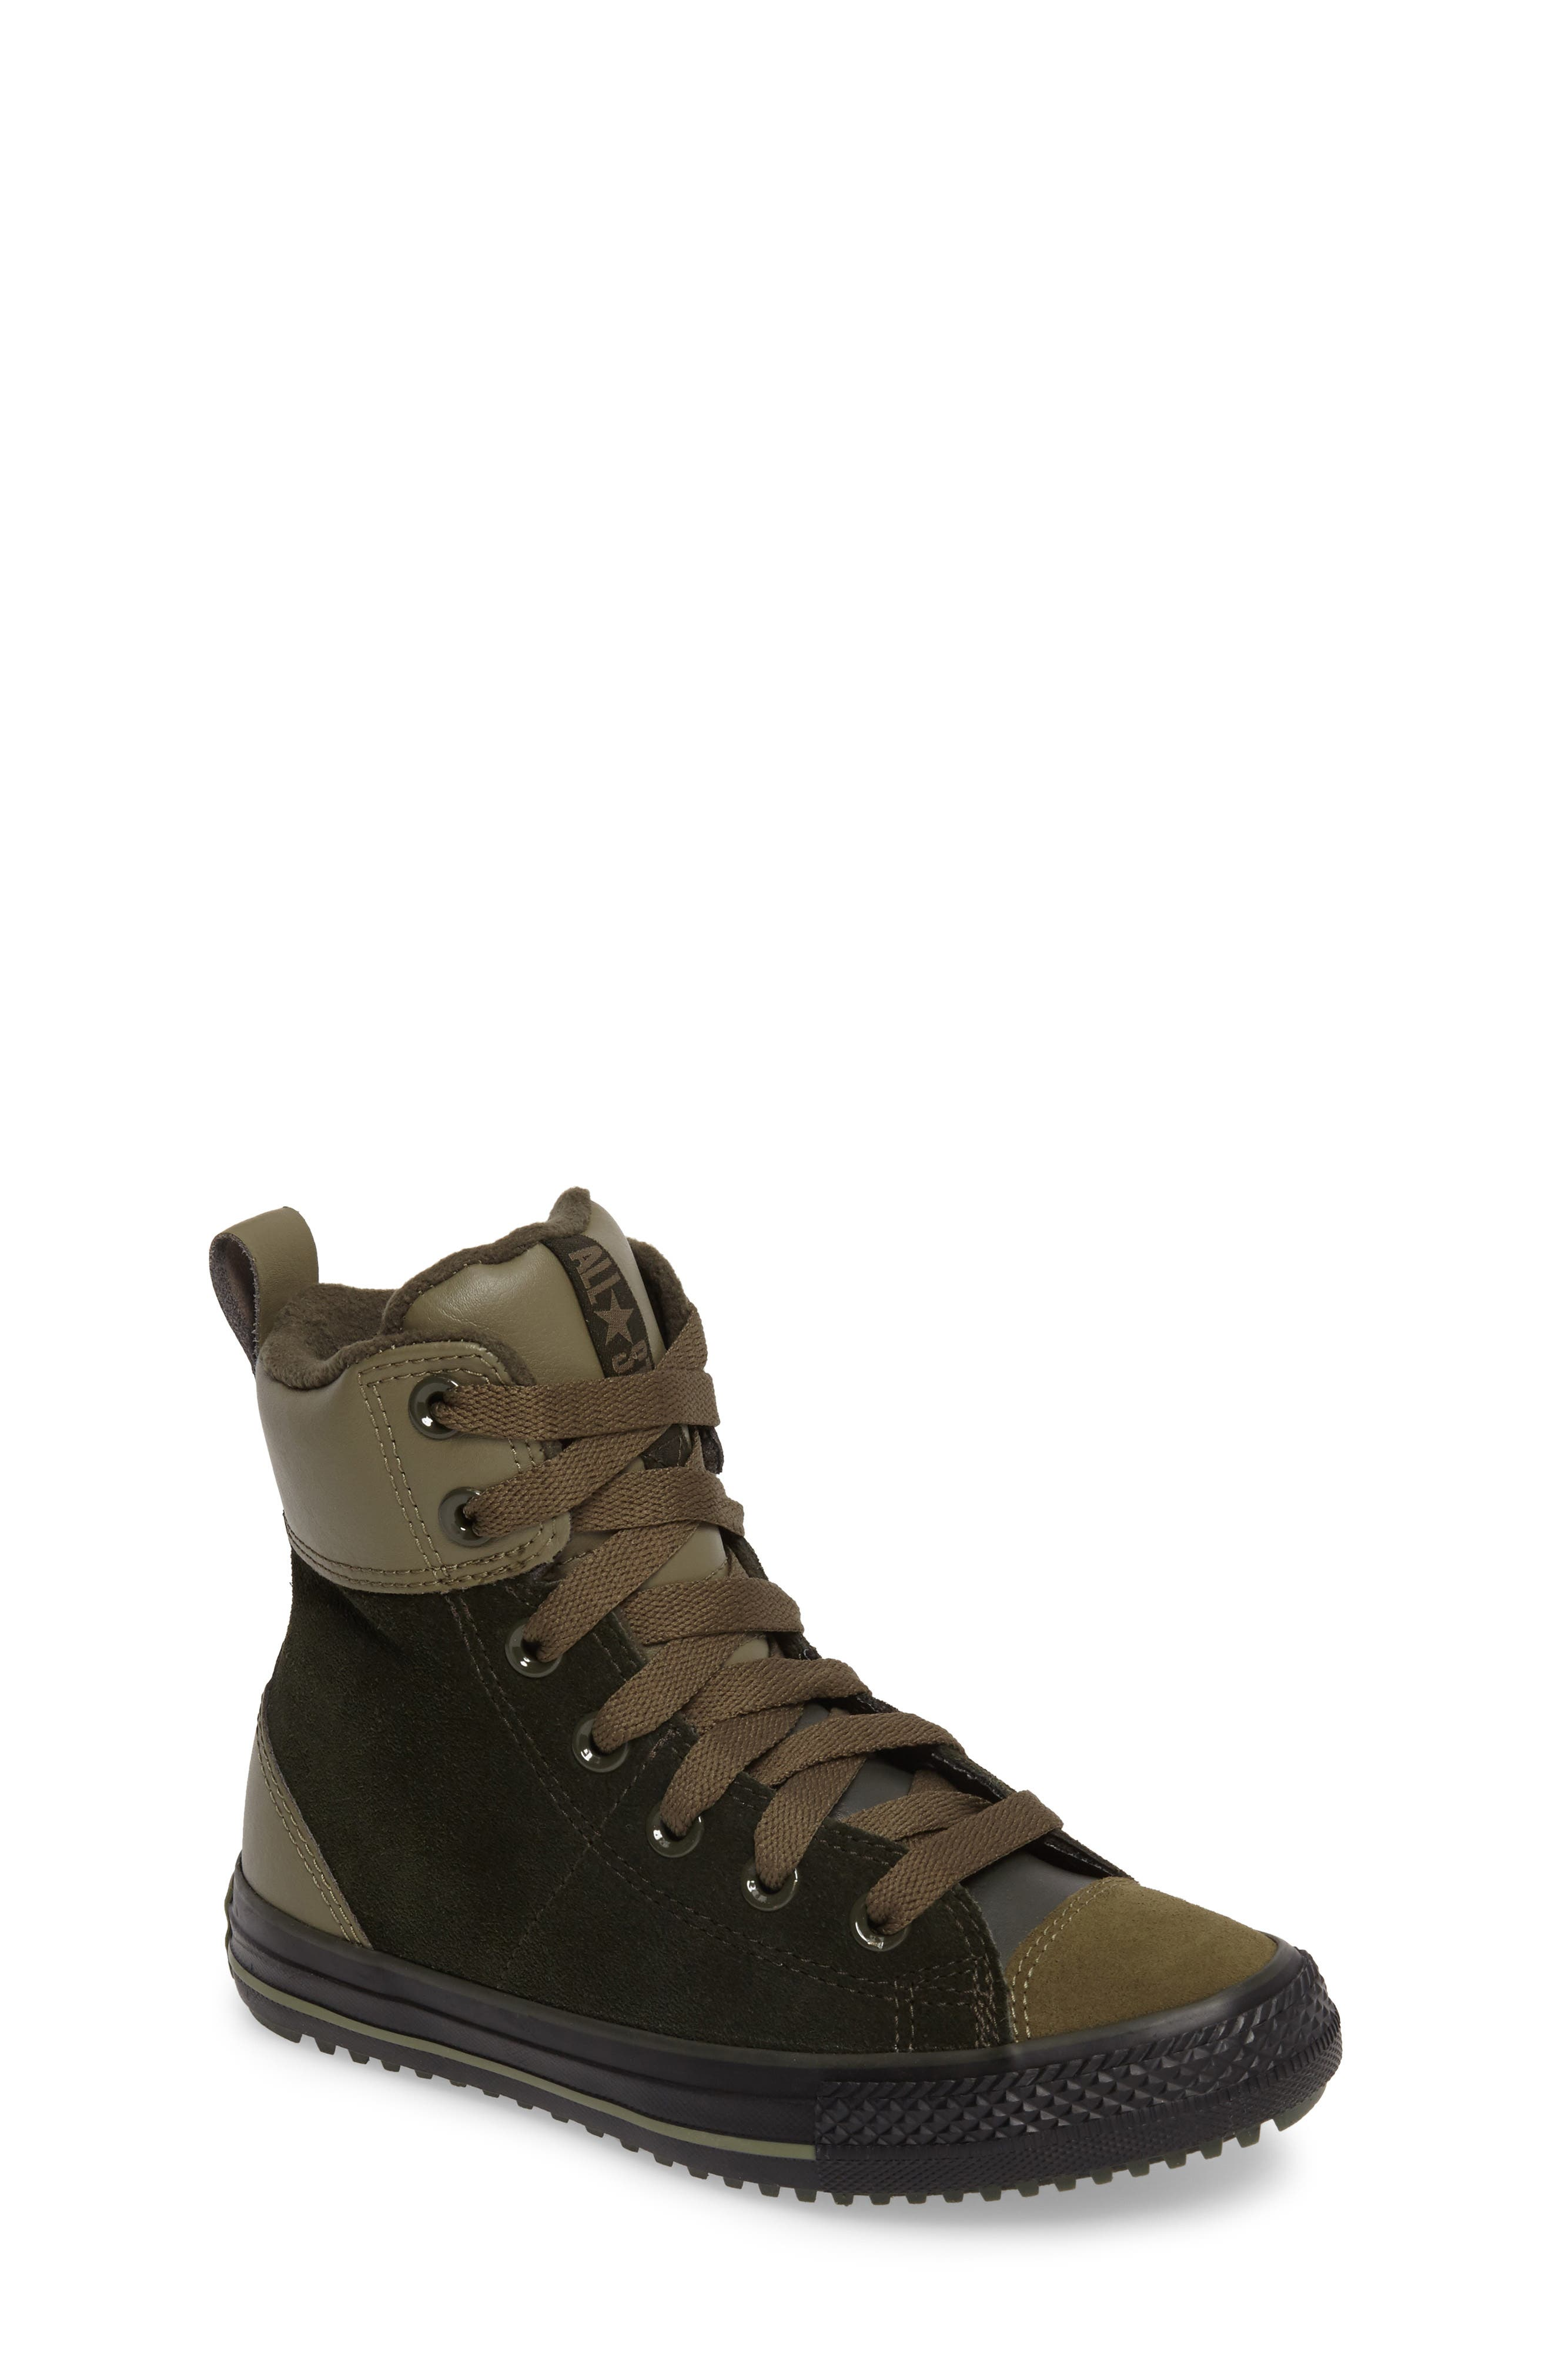 Chuck Taylor<sup>®</sup> All Star<sup>®</sup> Asphalt Sneaker Boot,                         Main,                         color, Sequoia